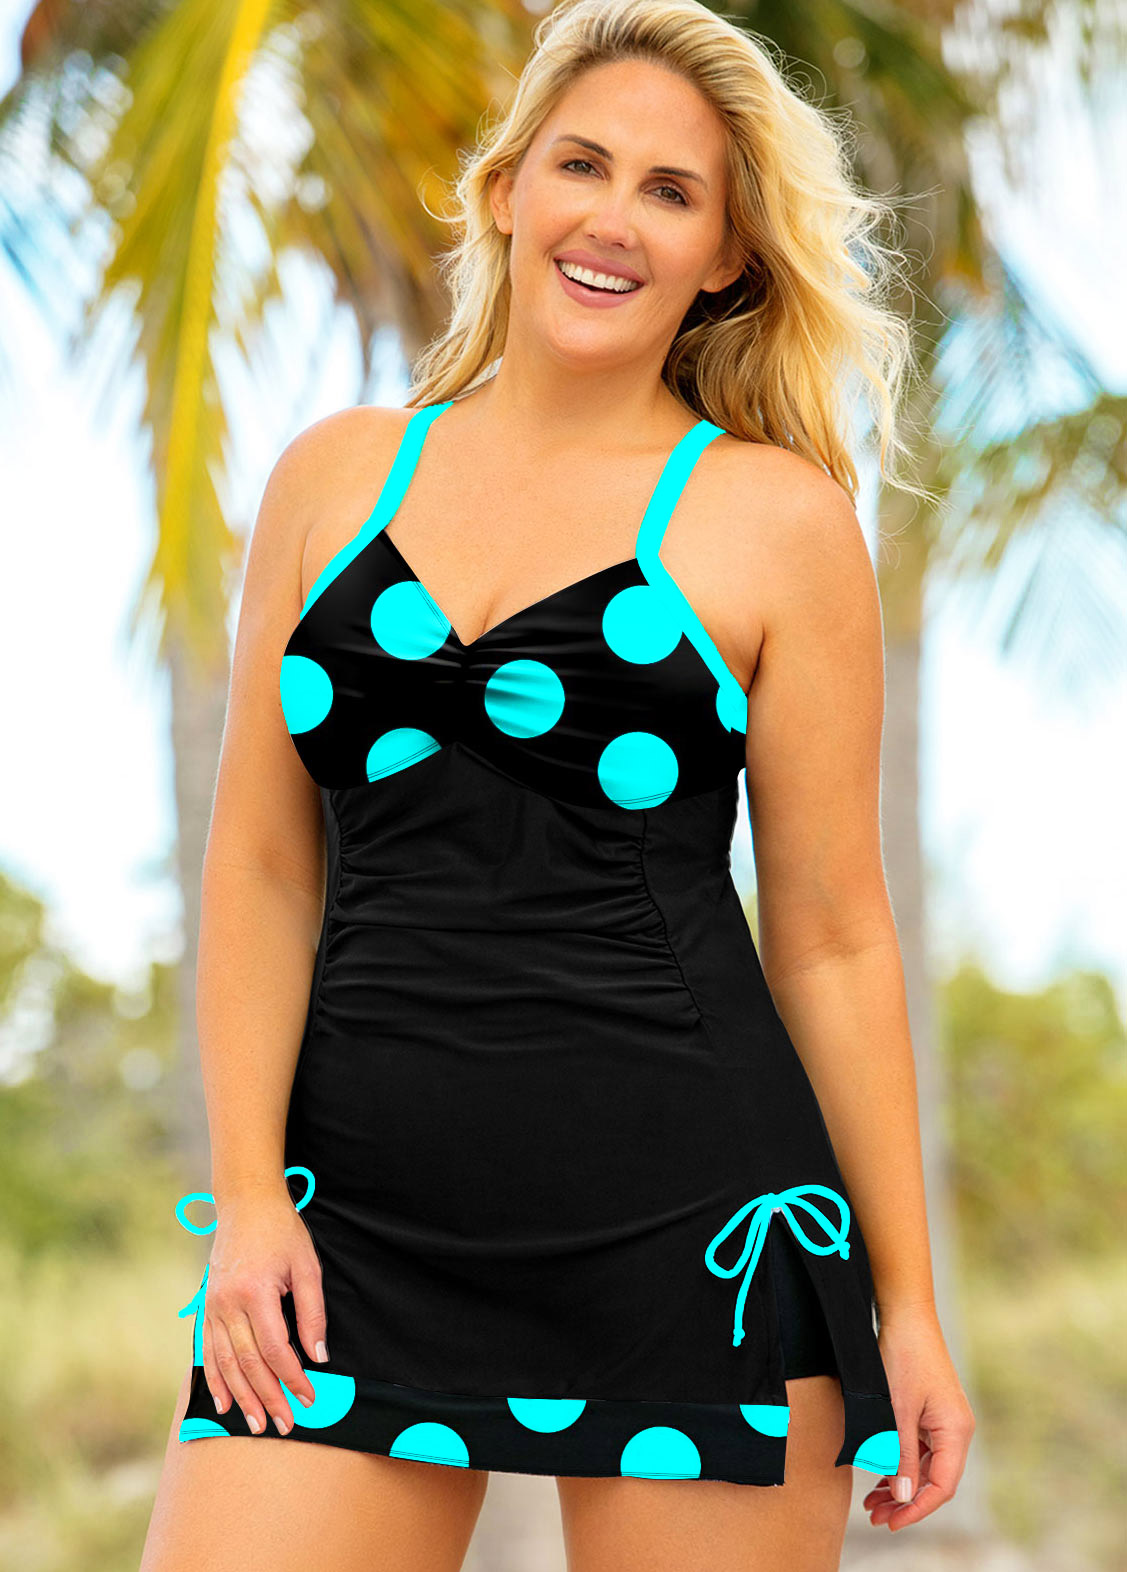 ROTITA Plus Size Polka Dot Spaghetti Strap Swimwear Top